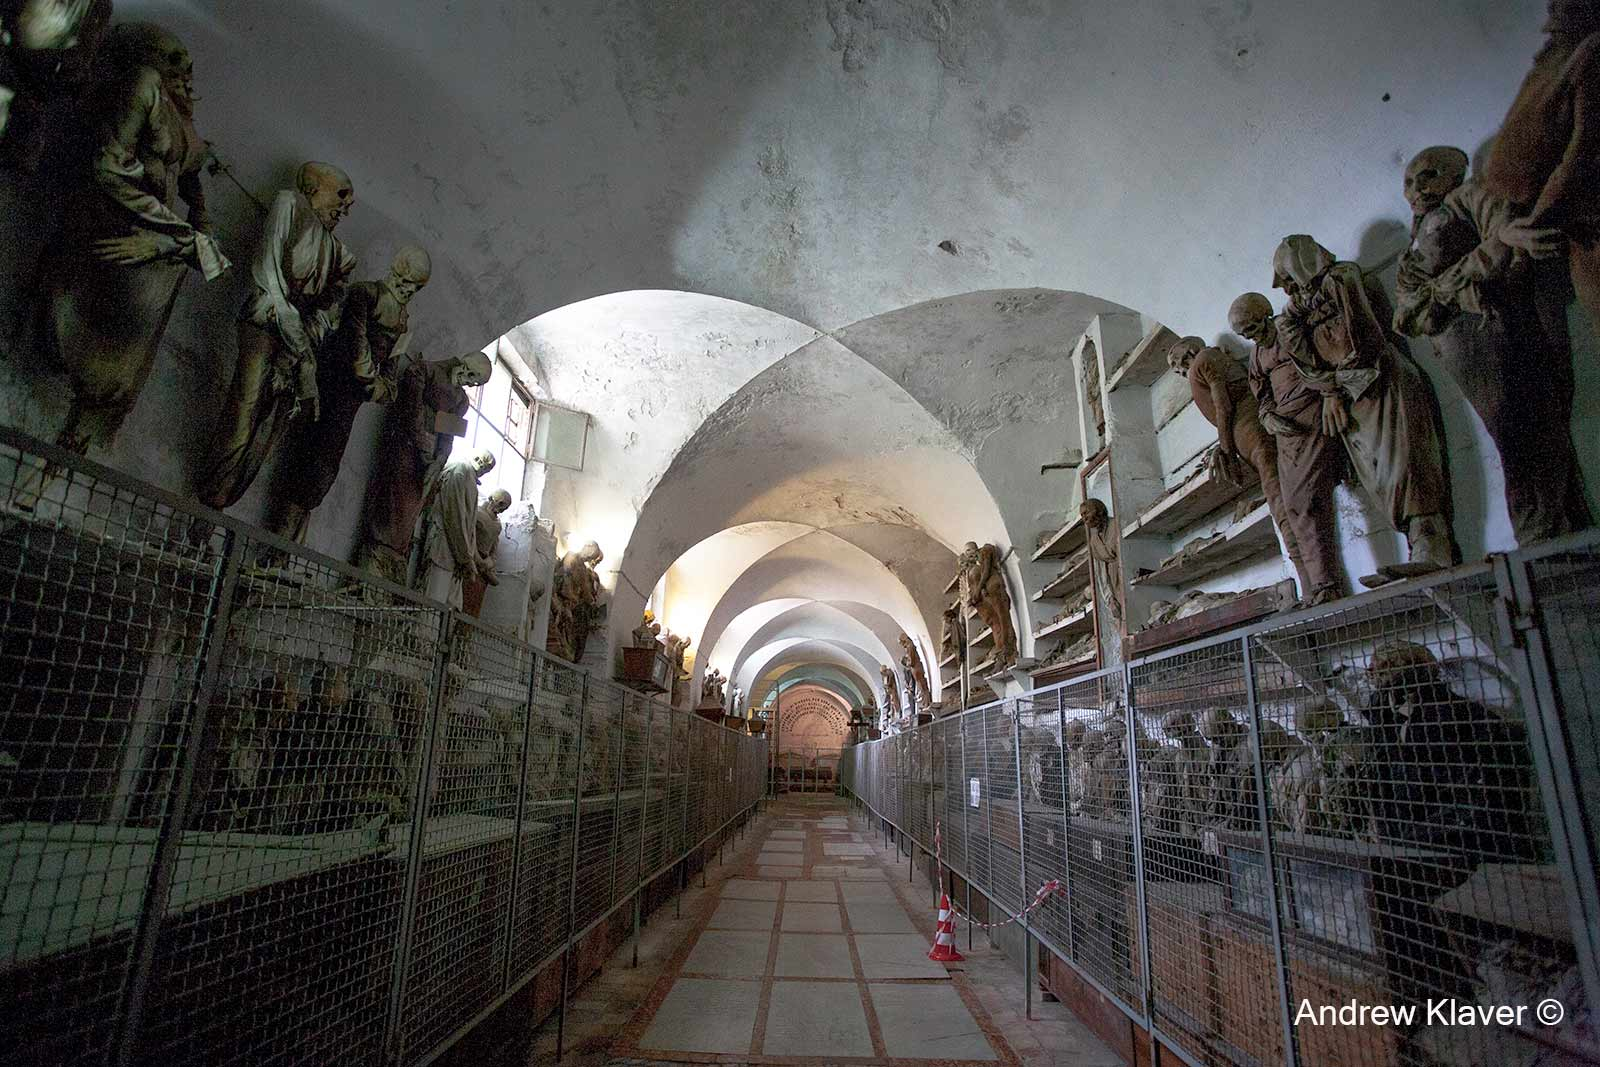 Crypt in Palermo, Italy